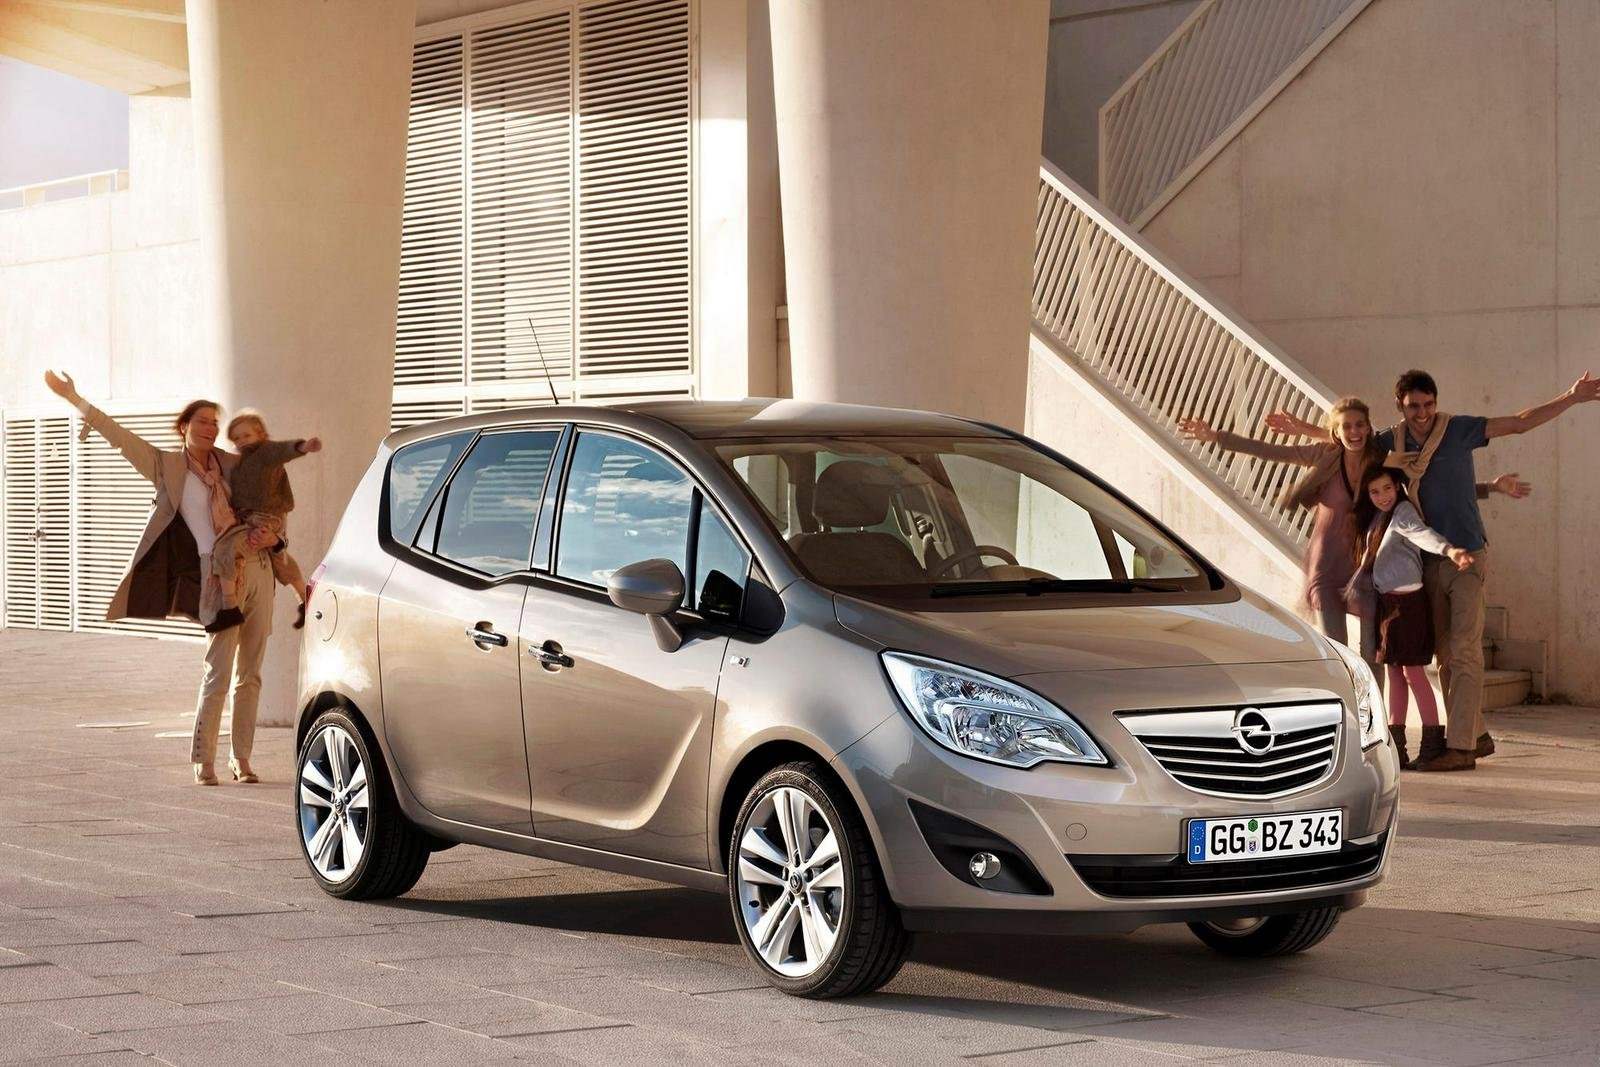 2011 opel meriva picture 340688 car review top speed. Black Bedroom Furniture Sets. Home Design Ideas